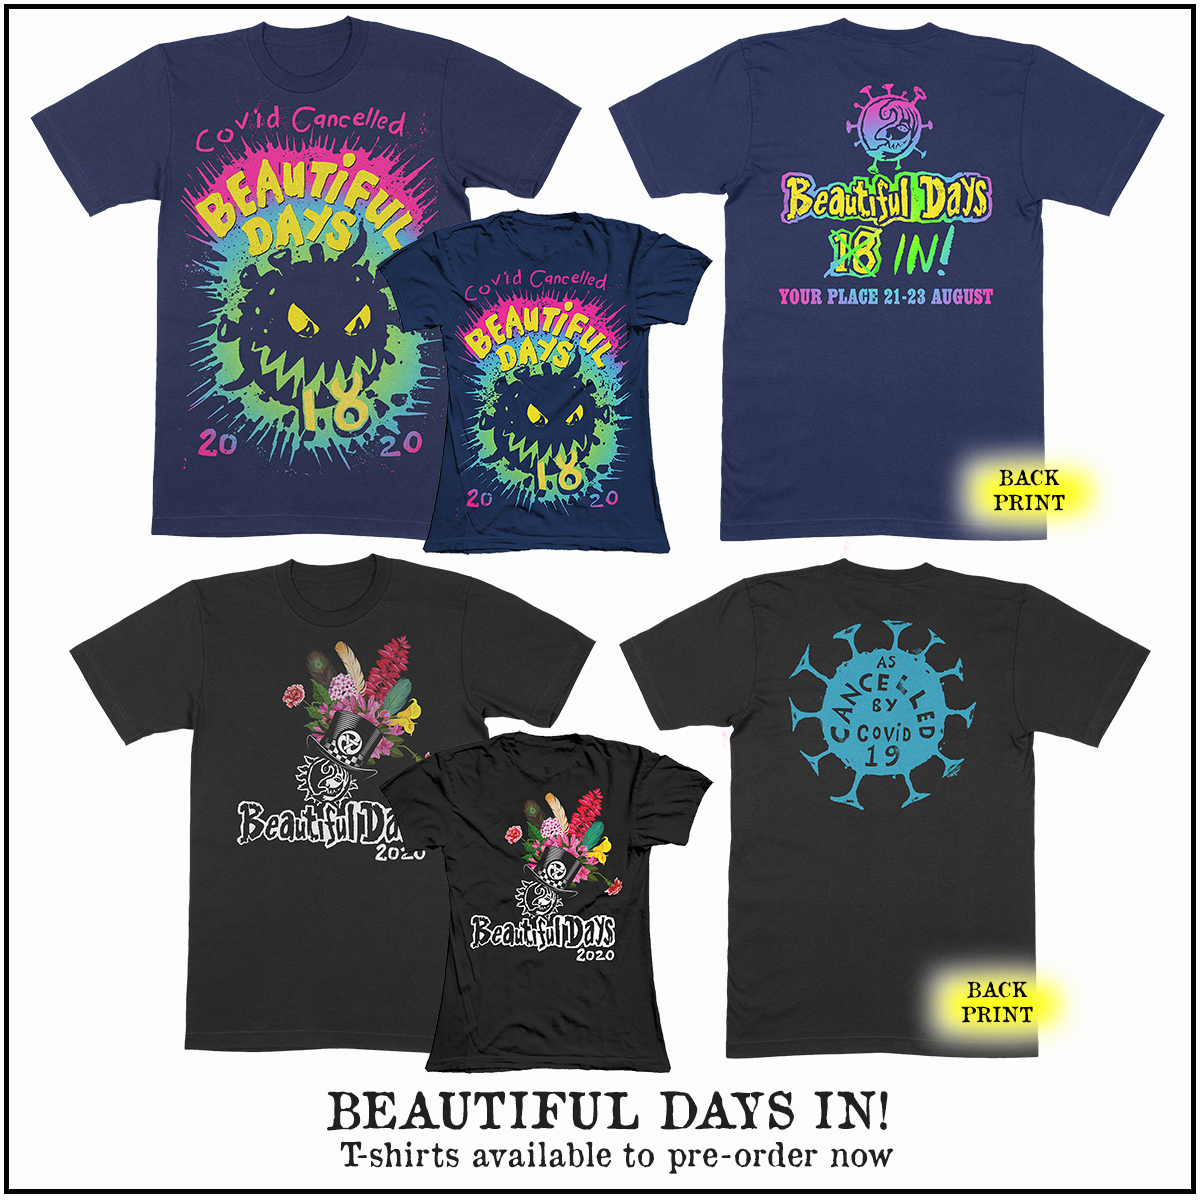 Beautiful Days IN! T-Shirts & more